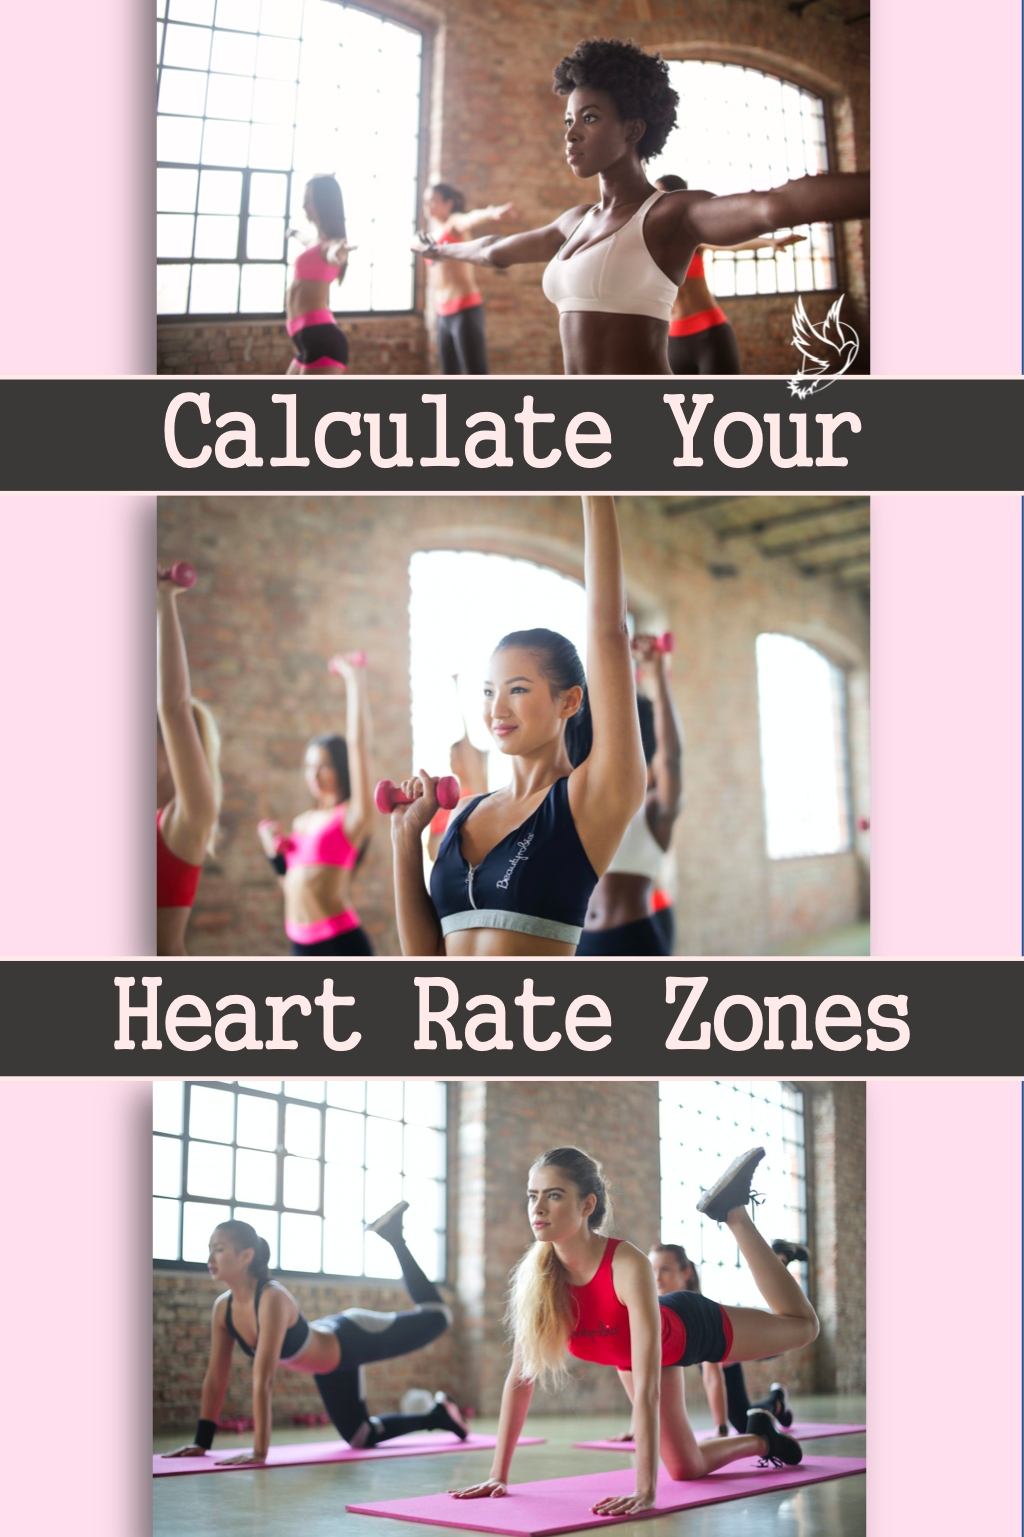 Calculating heart rate zones for fitness